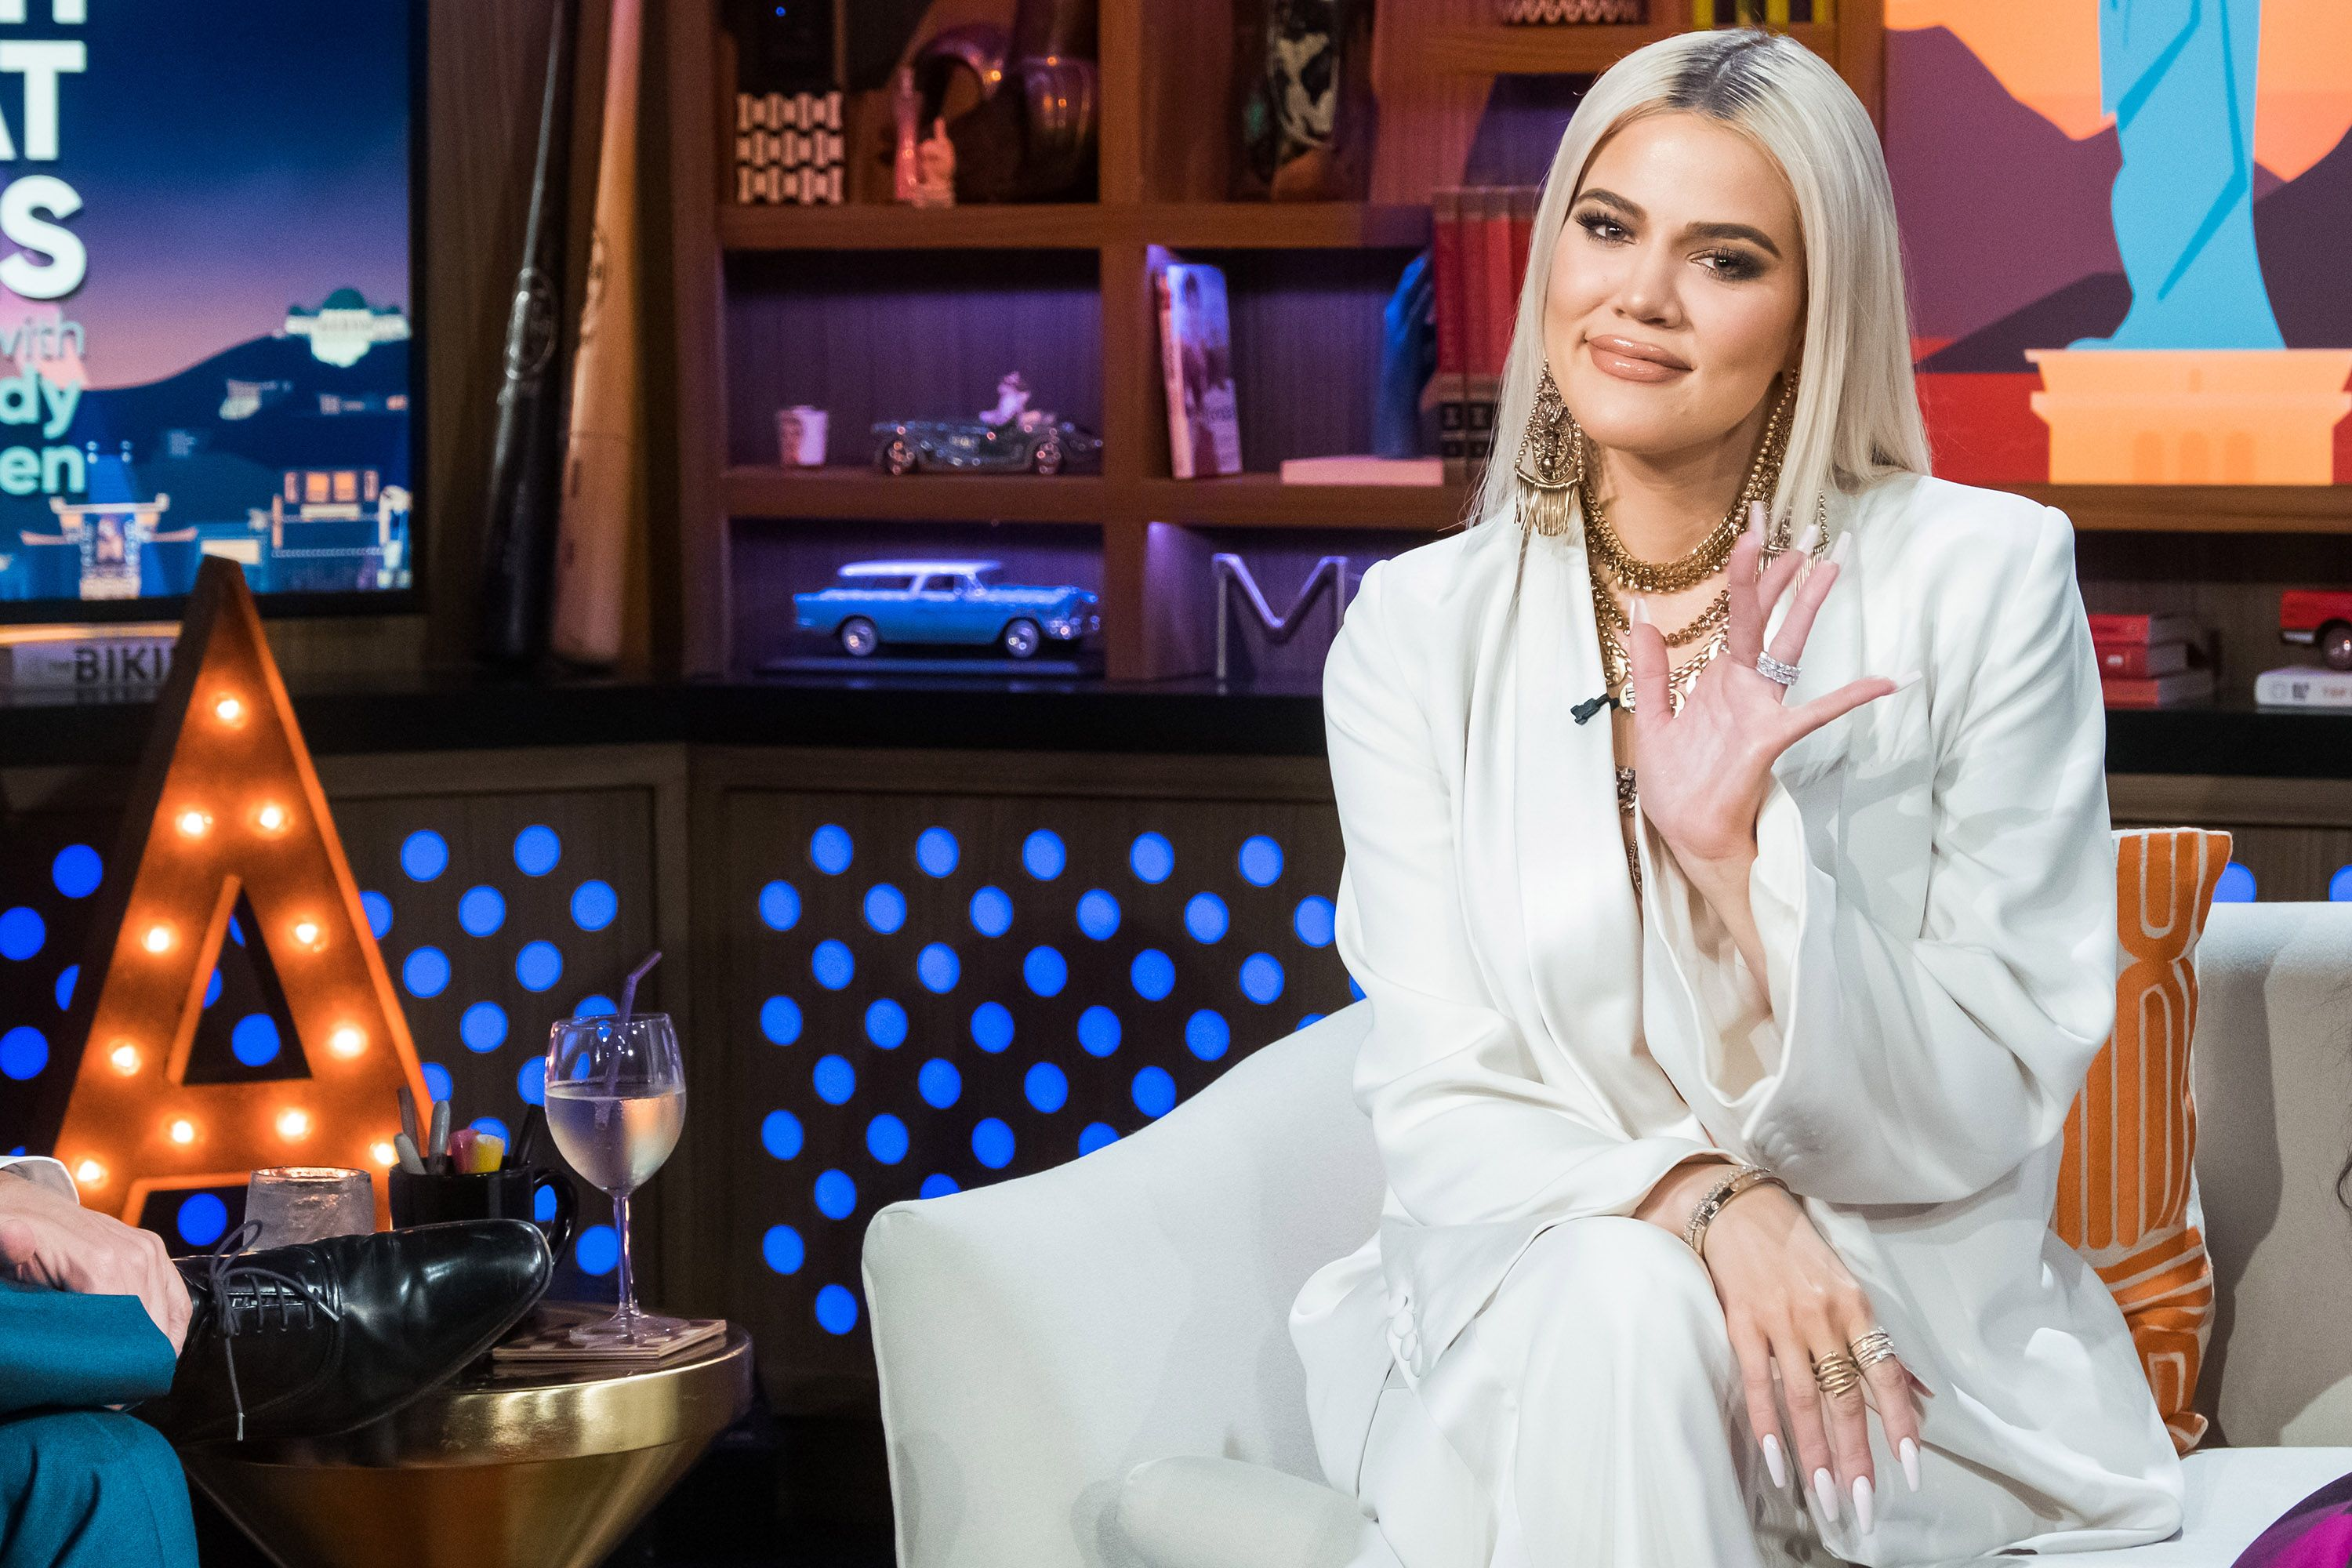 khloe kardashian on Watch What Happens Live with Andy Cohen